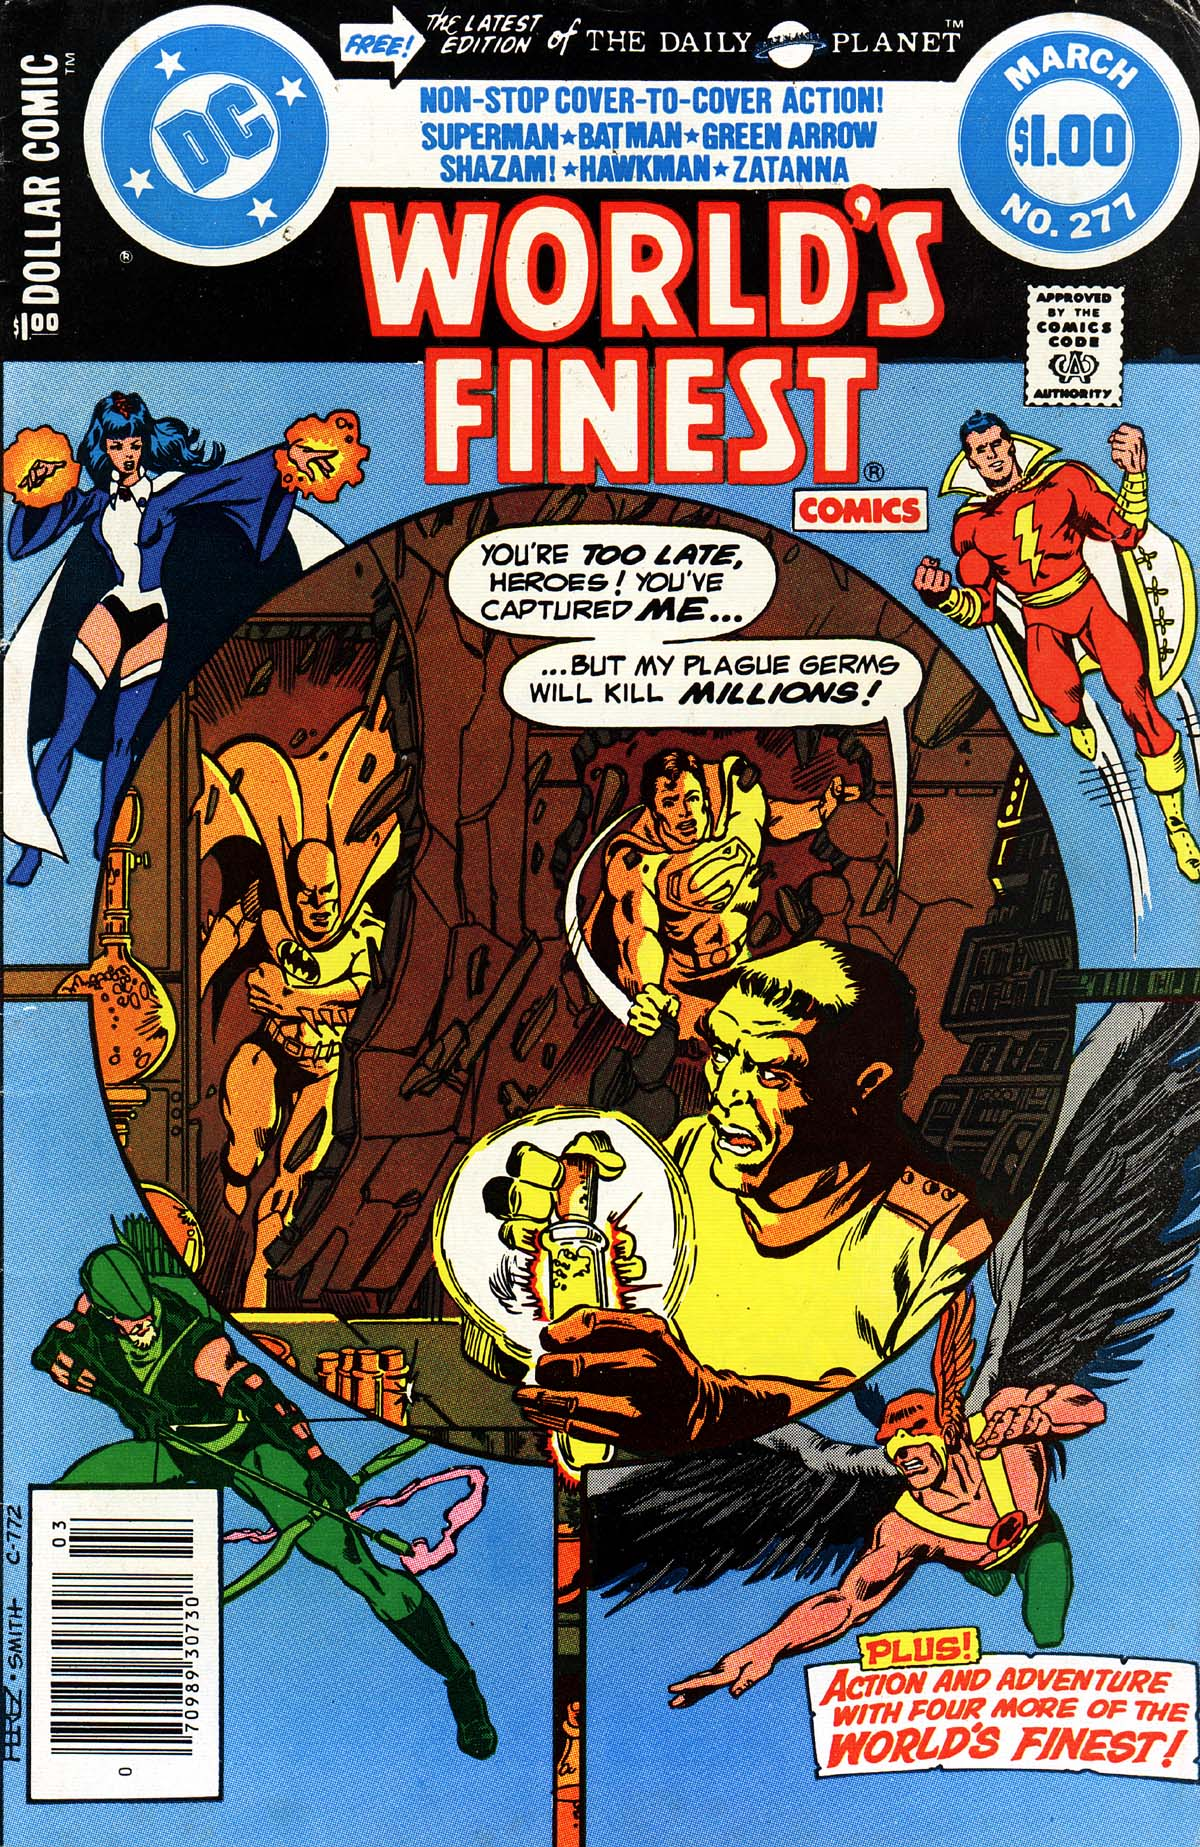 World's Finest Comics (1941) #277, cover penciled by George Perez & inked by Bob Smith.